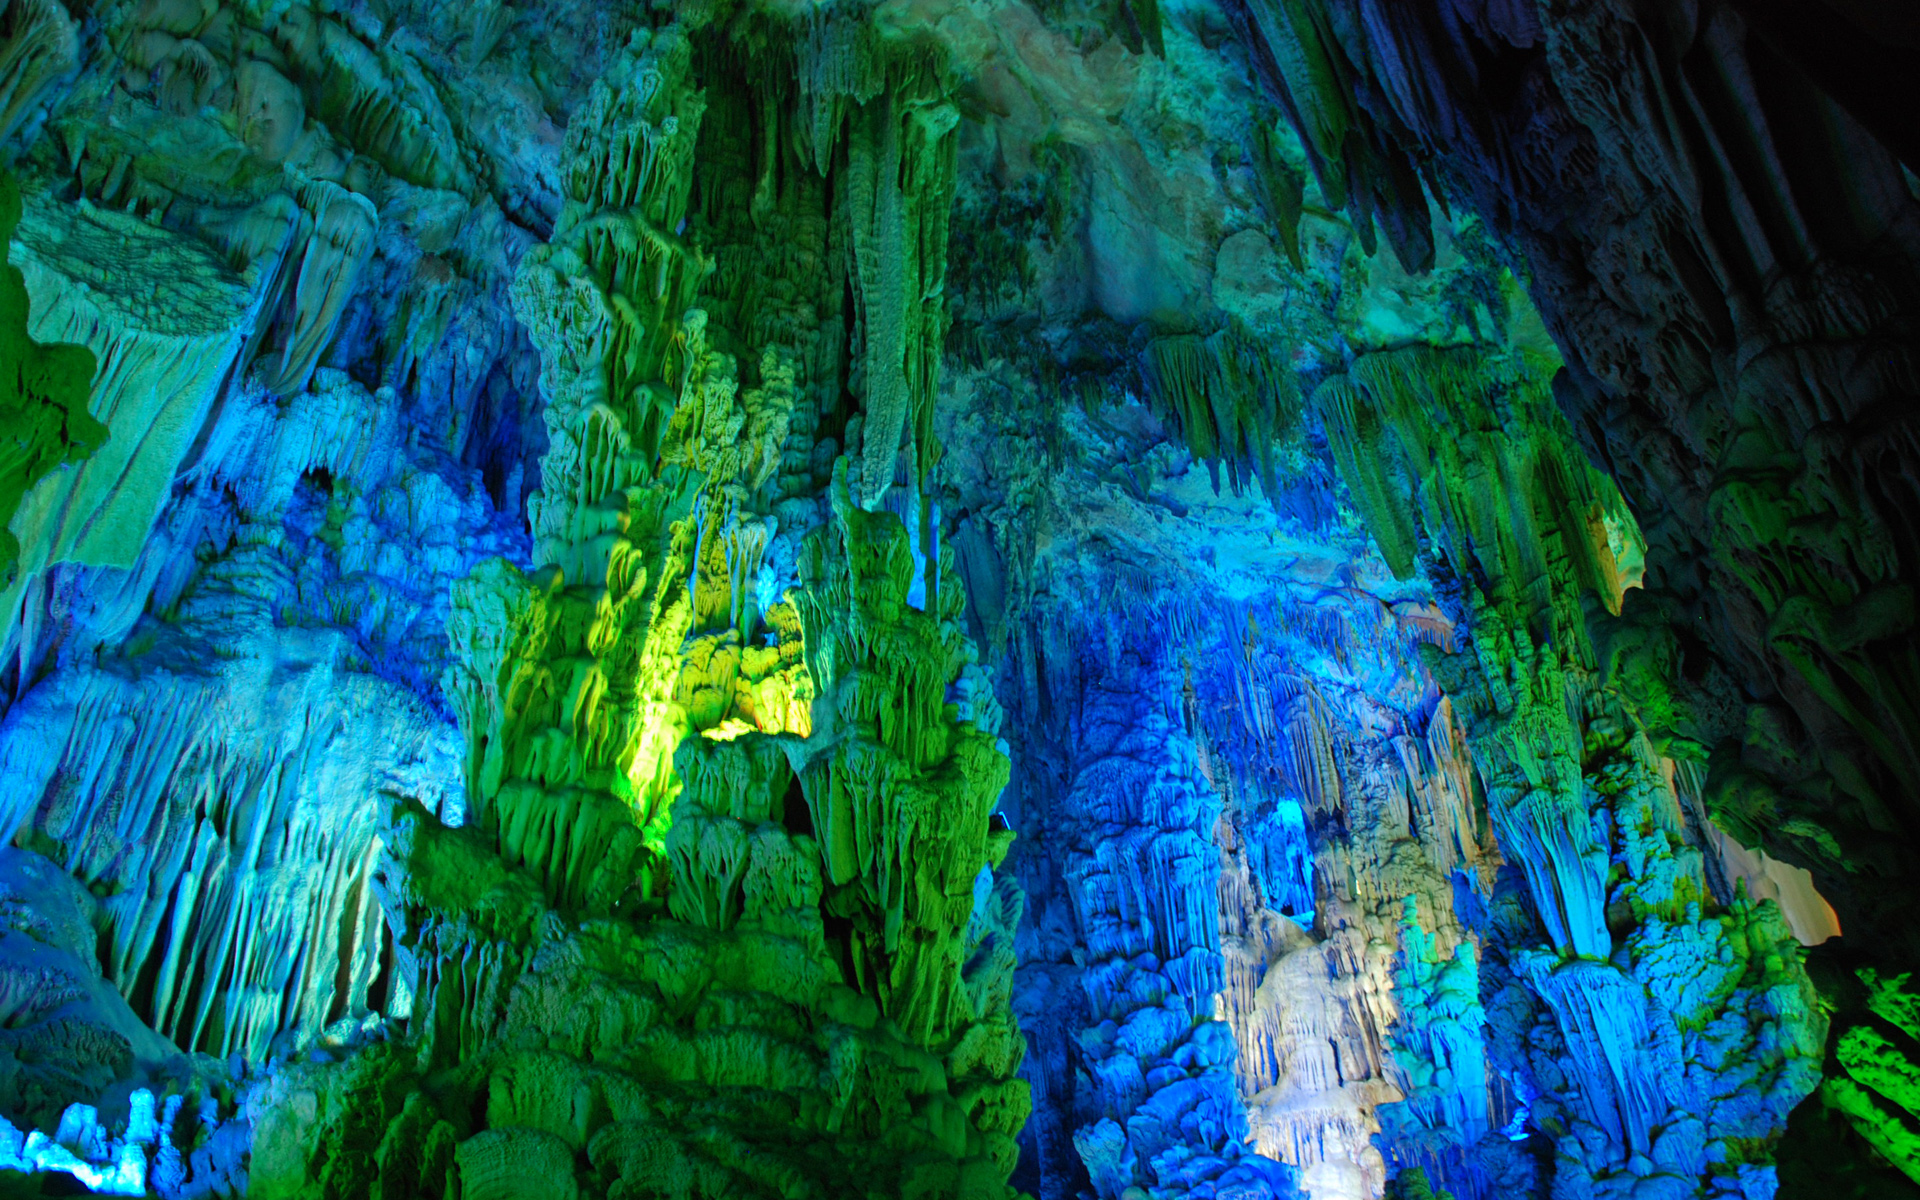 Earth Reed Flute Cave Wallpaper